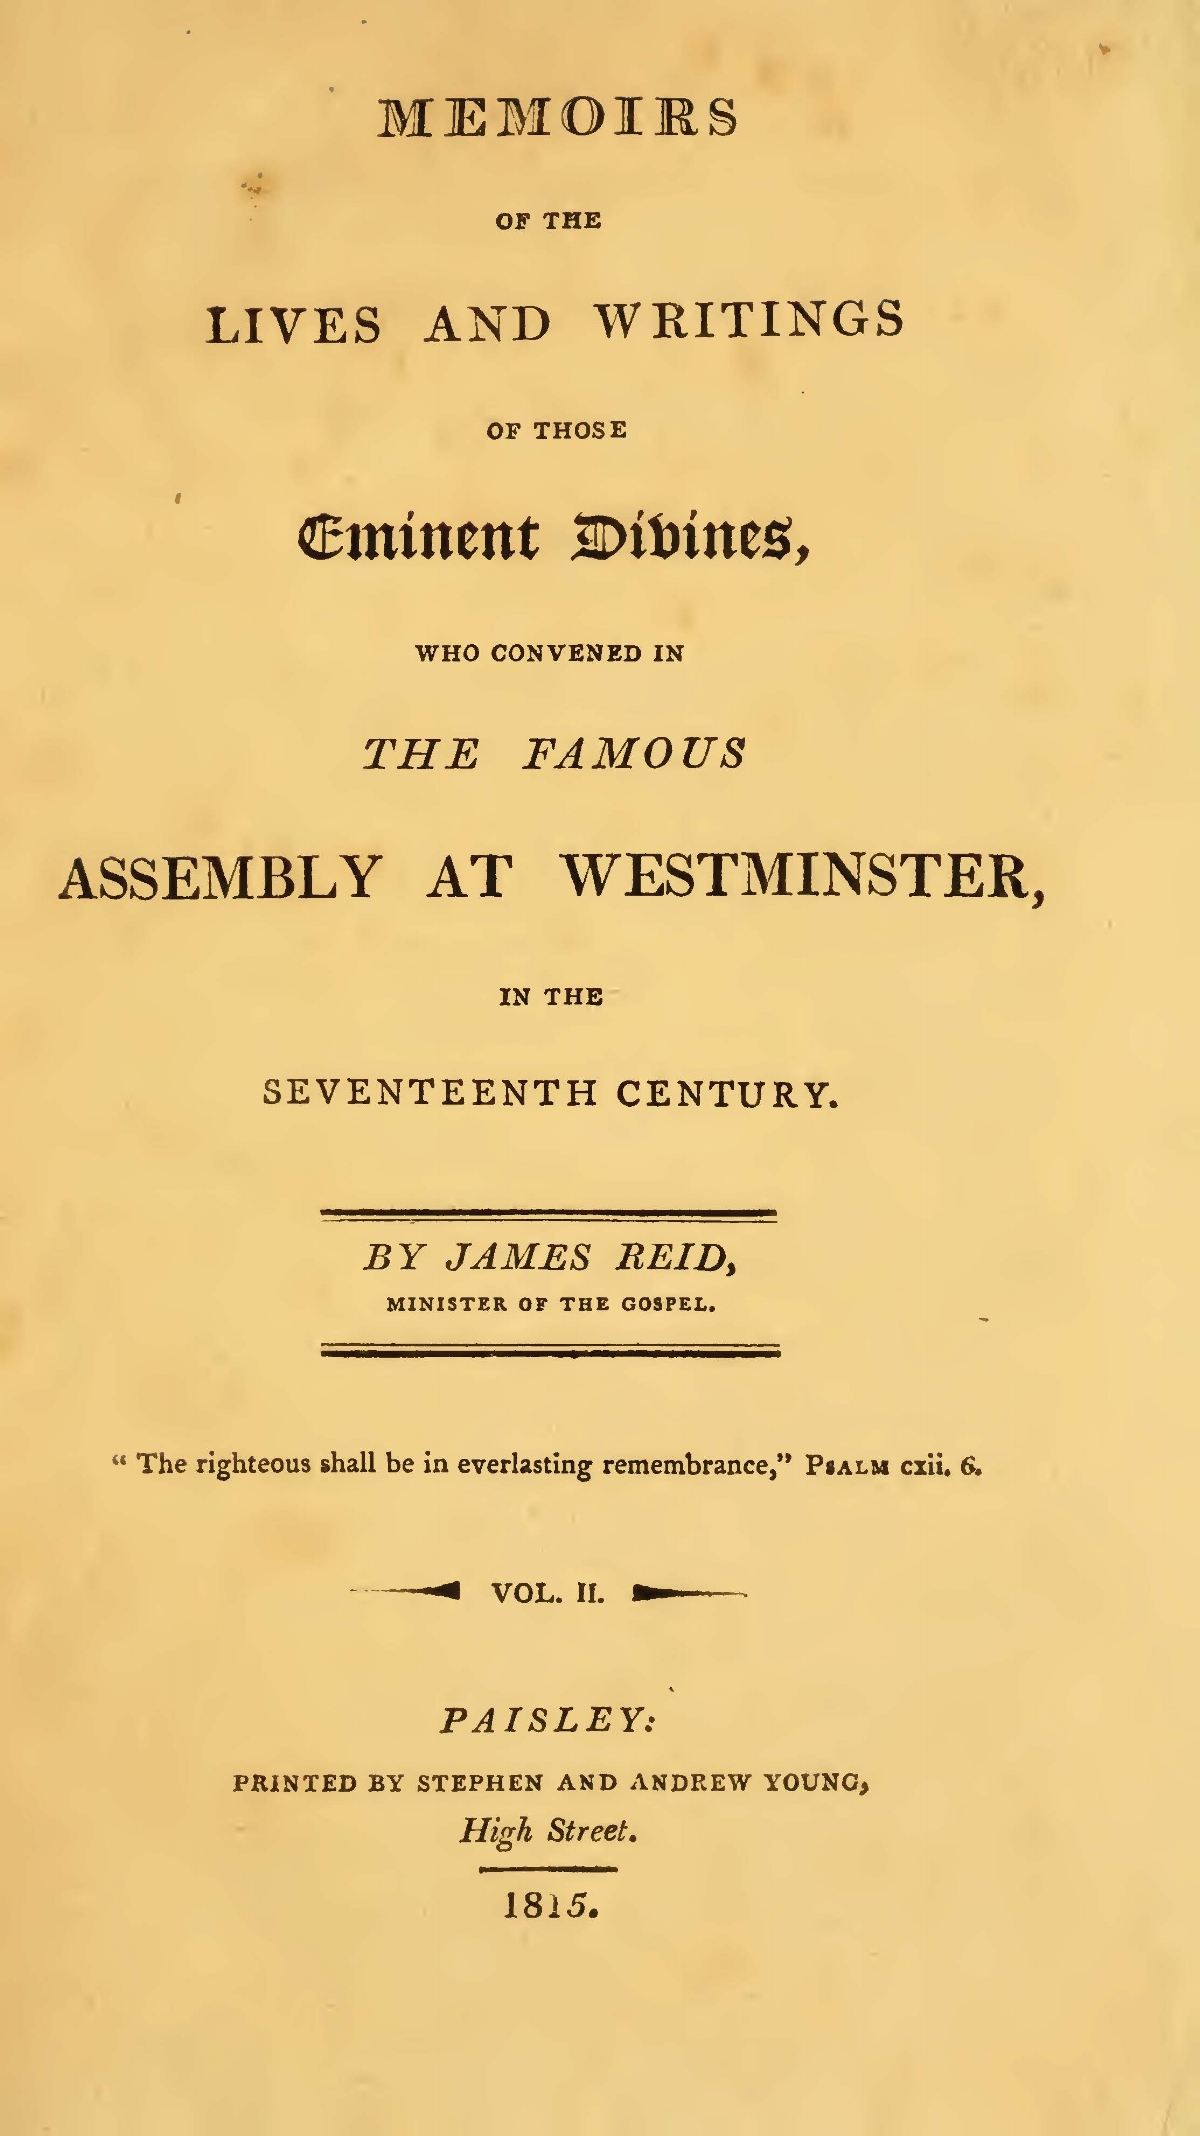 Reid, James, Memoirs of the Lives and Writings of the Westminster Divines, Vol. 2 Title Page.jpg